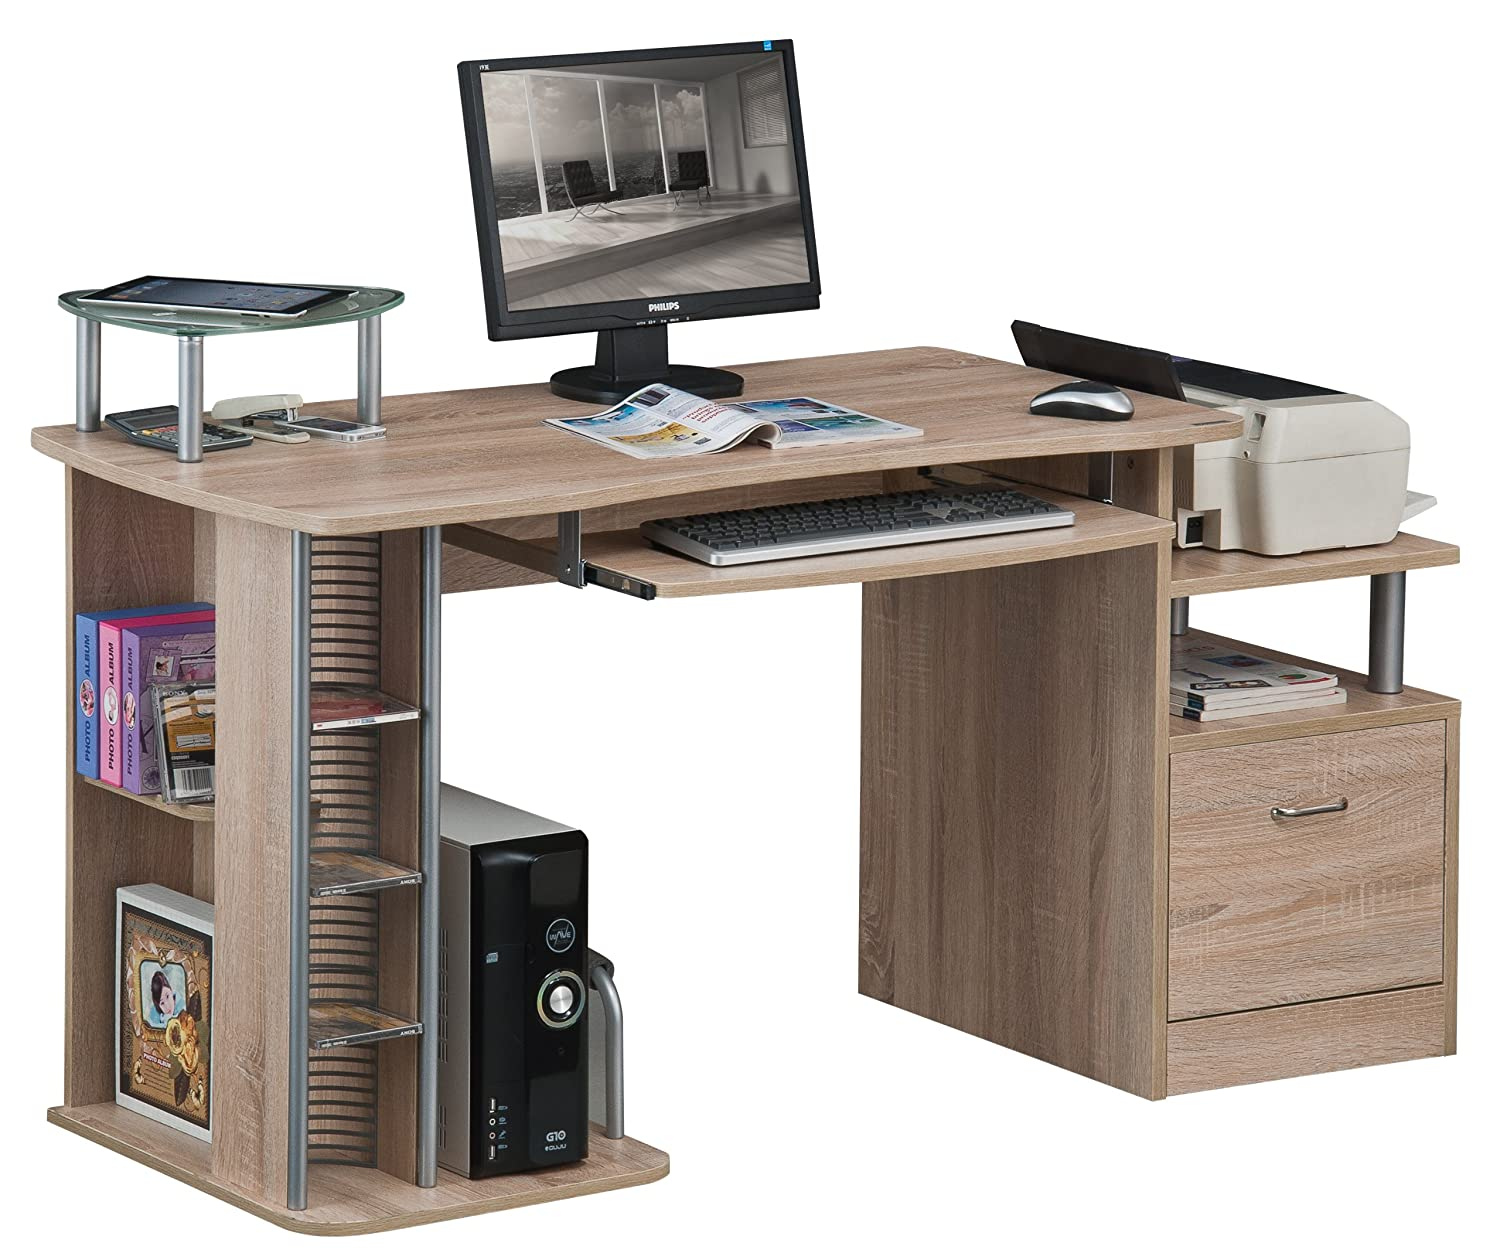 SixBros. Computer Desk - PC Workstation - Office Desk - Black - S-202A/85